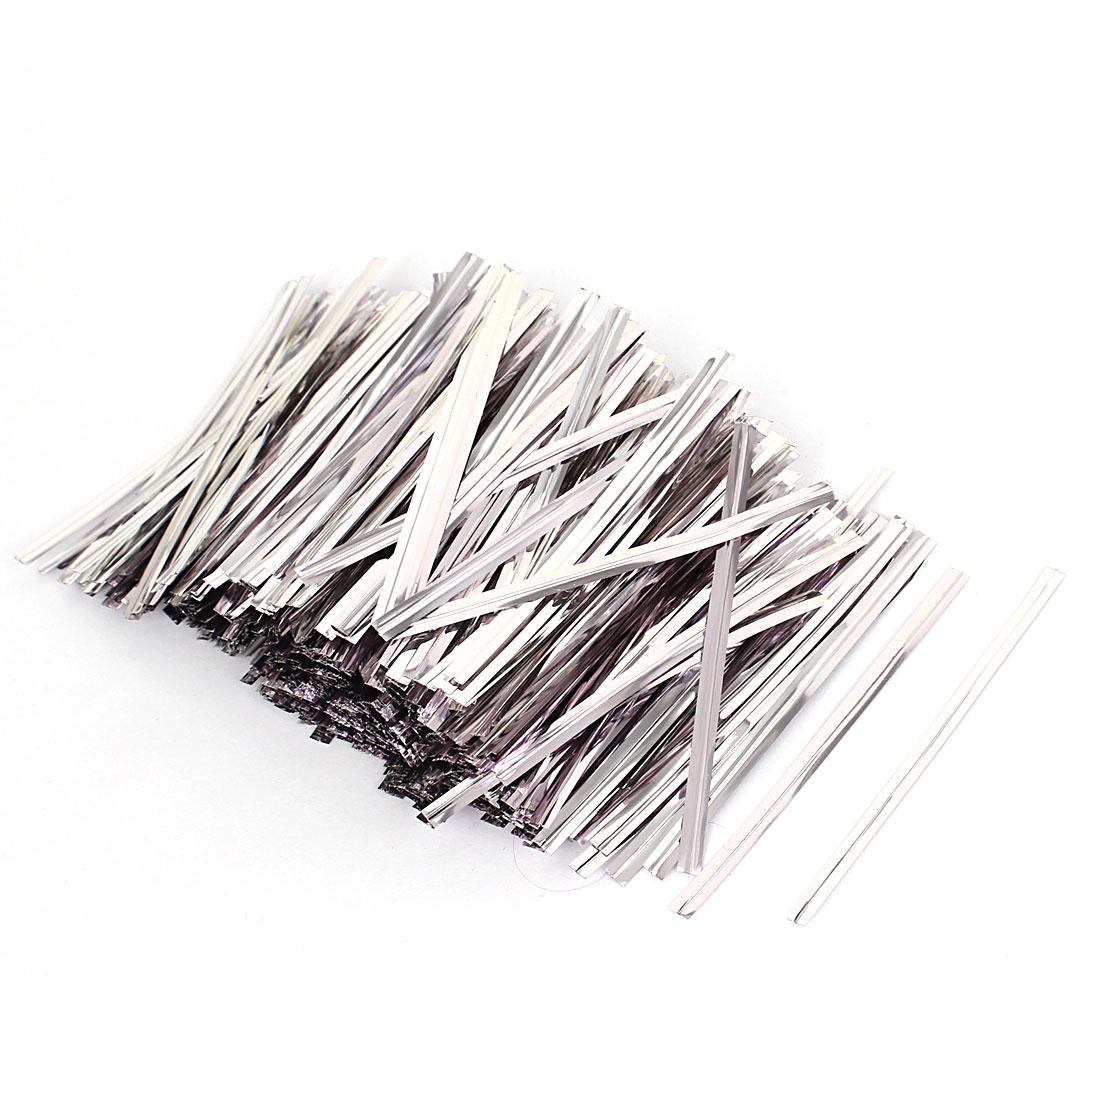 1600 Pcs 8cm Length Candy Bread Bags Packaging Twist Cable Tie